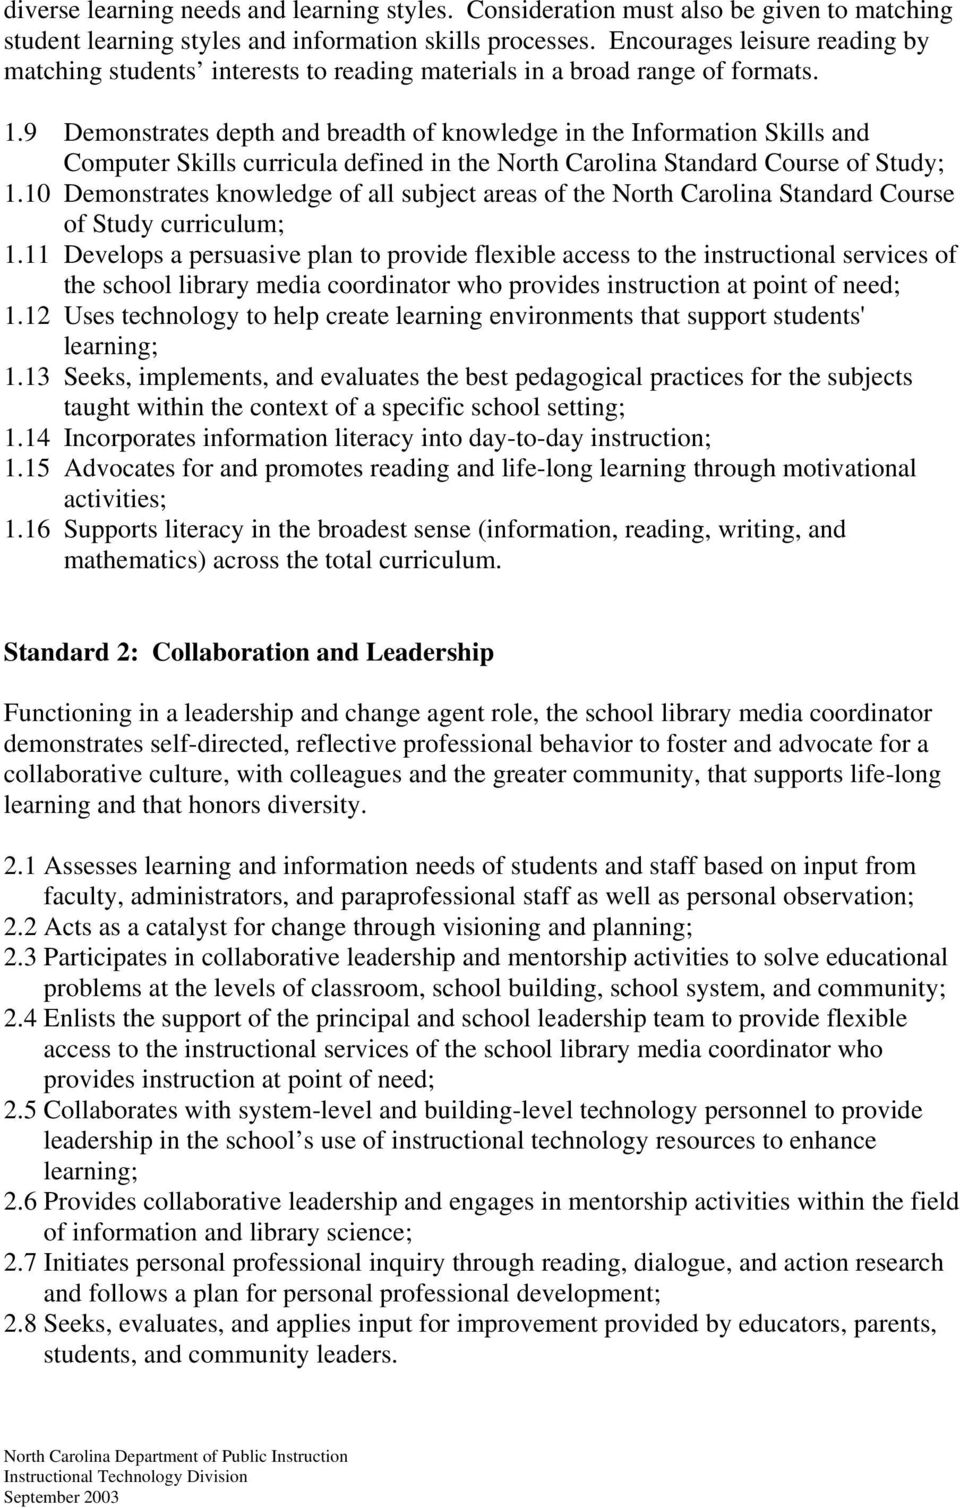 9 Demonstrates depth and breadth of knowledge in the Information Skills and Computer Skills curricula defined in the North Carolina Standard Course of Study; 1.